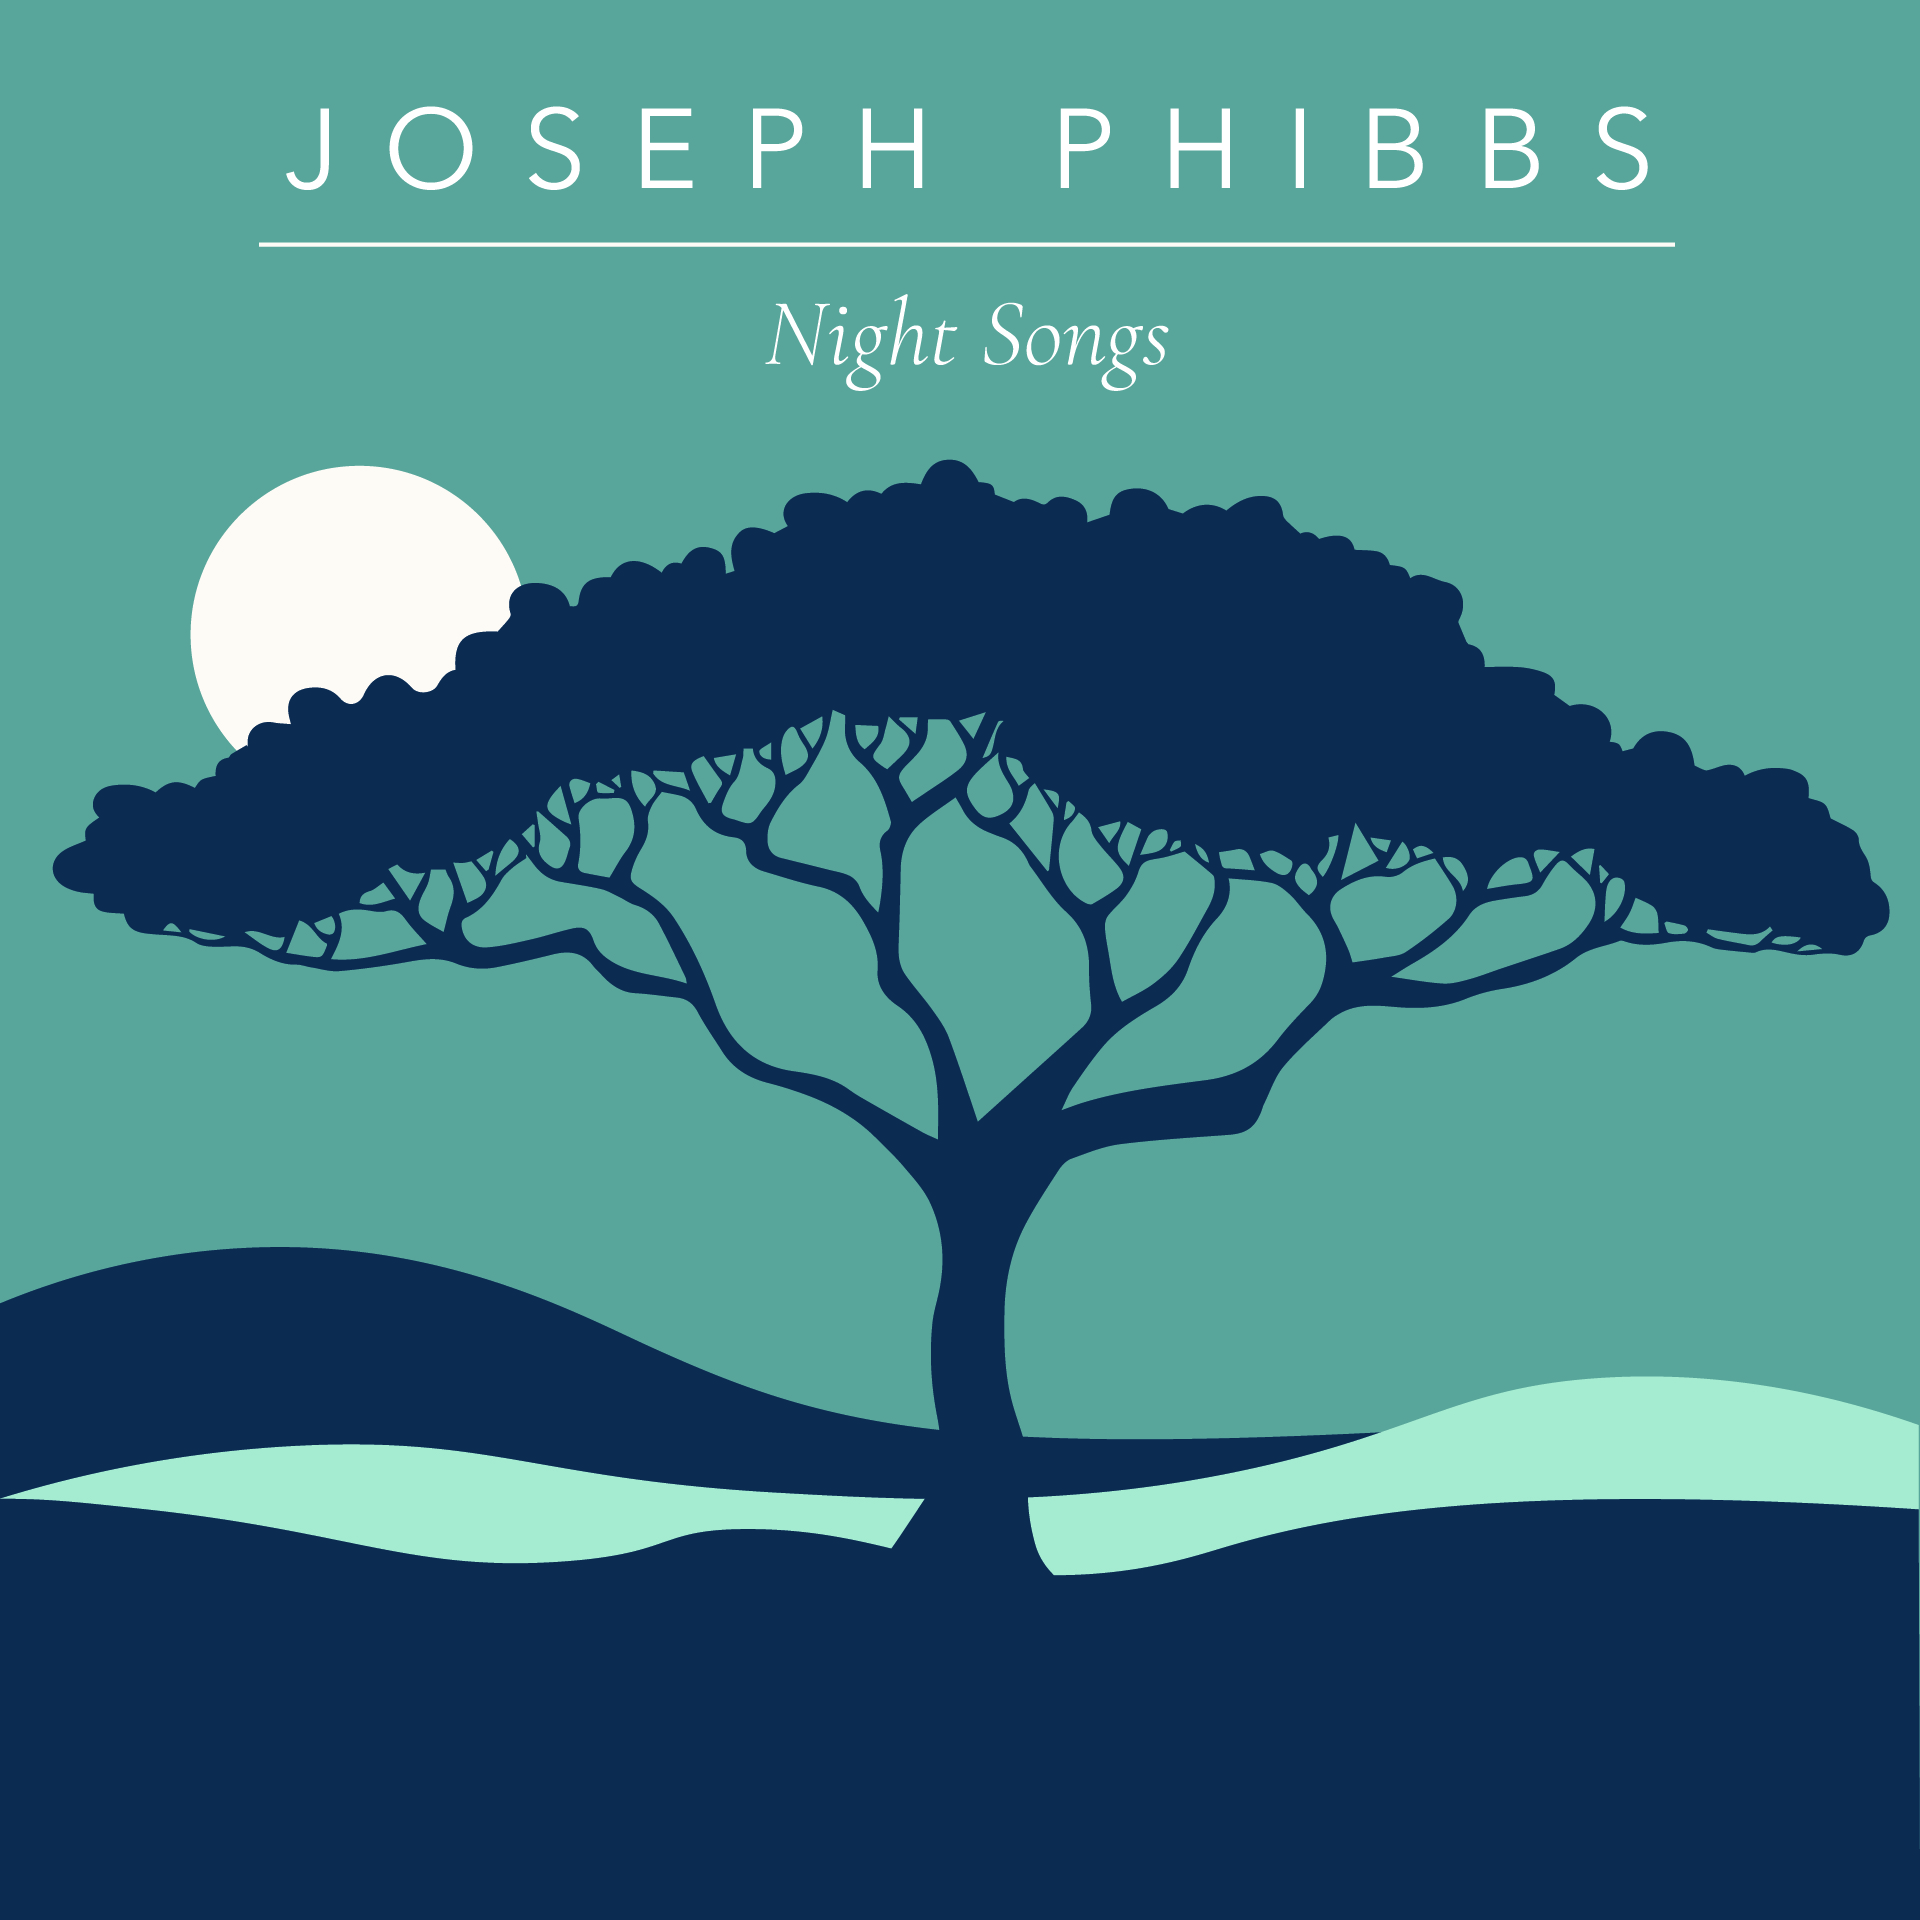 Night Songs by Joseph Phibbs - Available worldwide.